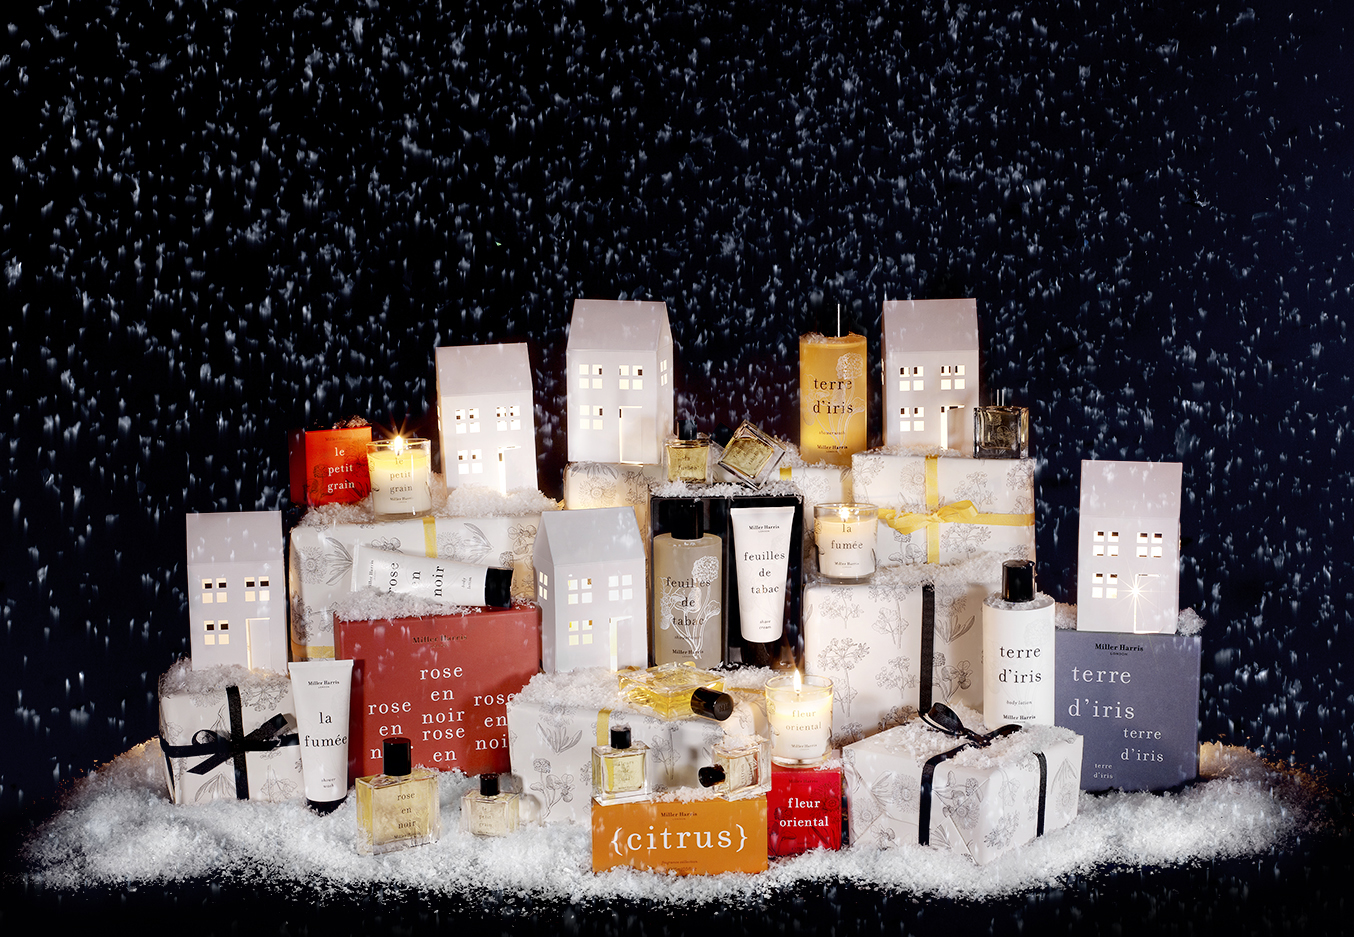 Perfumes and other cosmetics in a christmas still life setting with houses and snow, London product photographer chris howlett